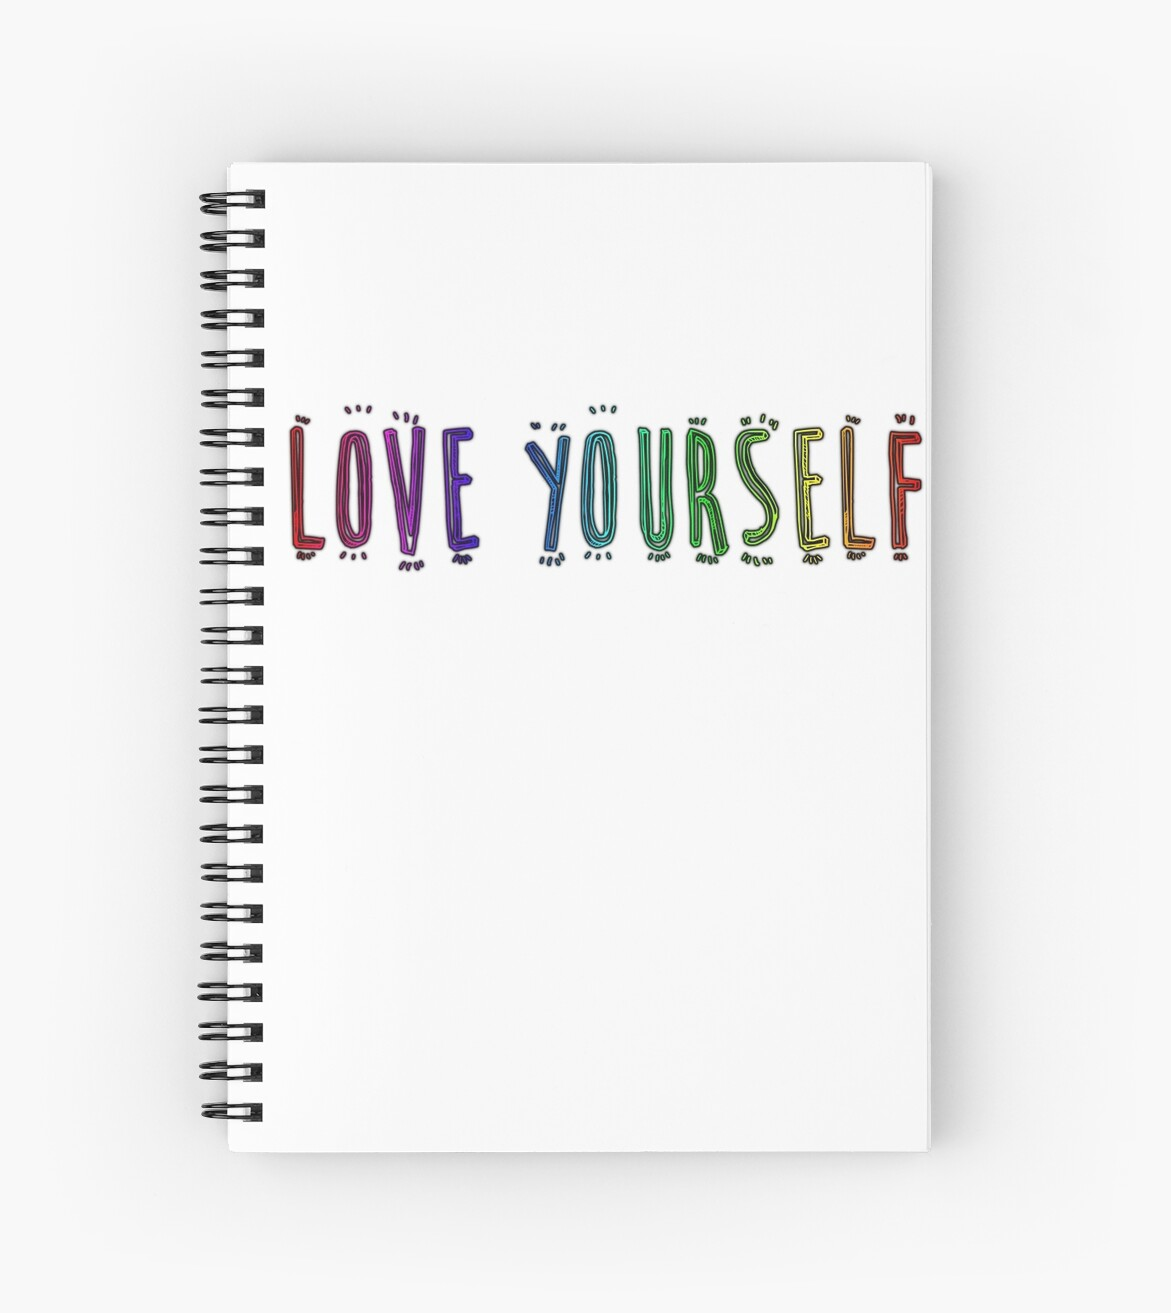 love yourself! :) by alltimehustler